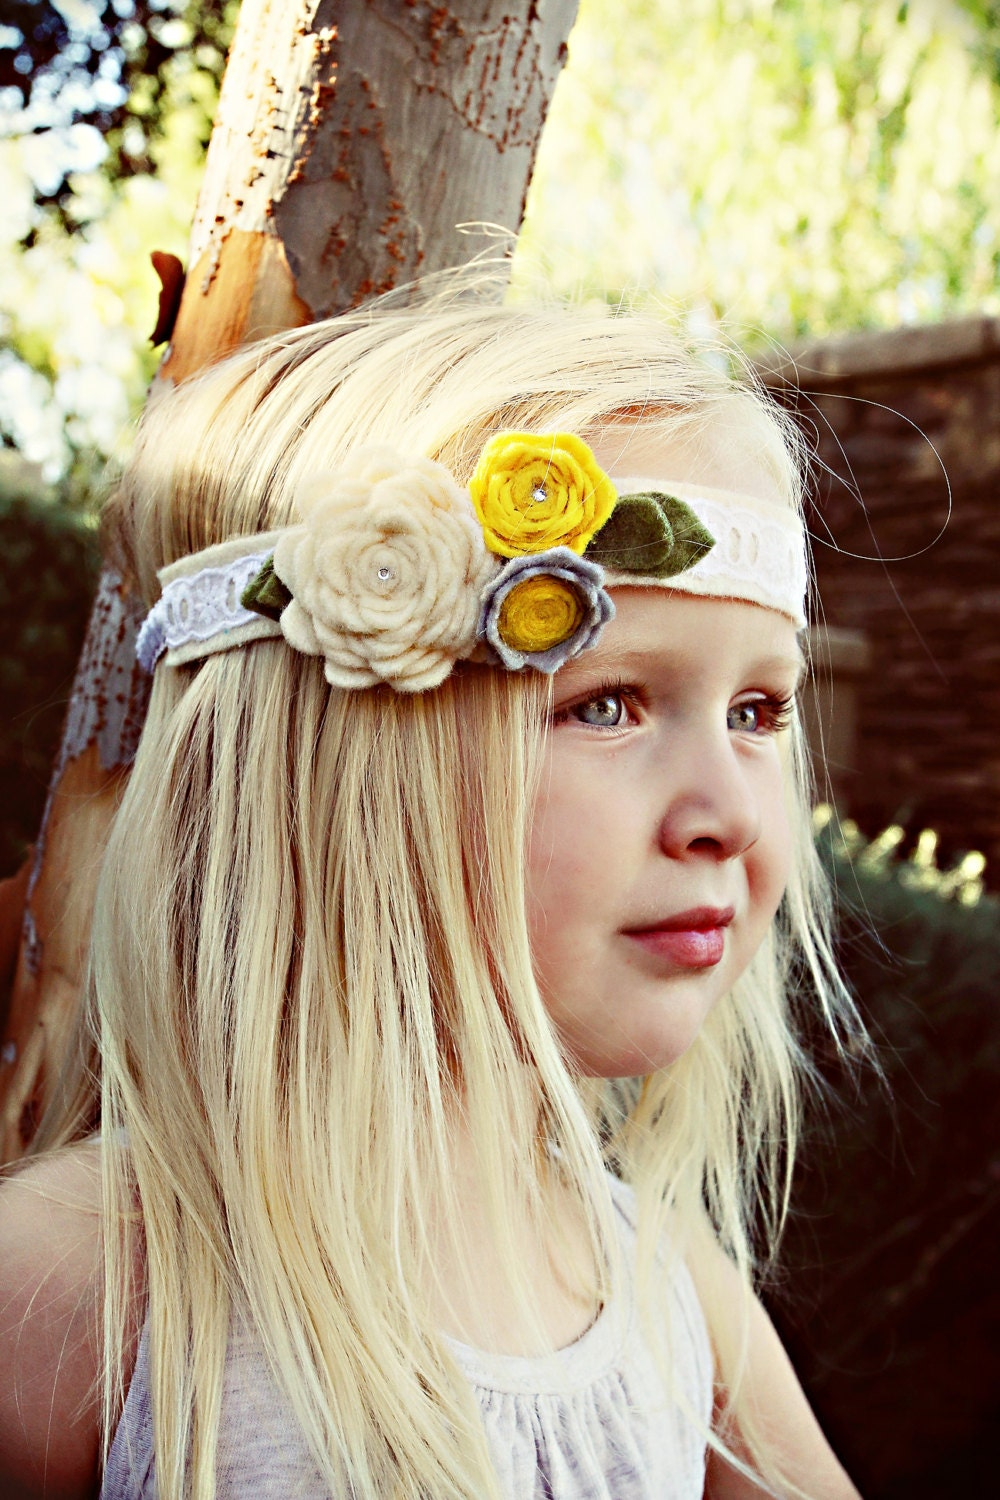 You searched for: girls flower headbands! Etsy is the home to thousands of handmade, vintage, and one-of-a-kind products and gifts related to your search. No matter what you're looking for or where you are in the world, our global marketplace of sellers can help you .